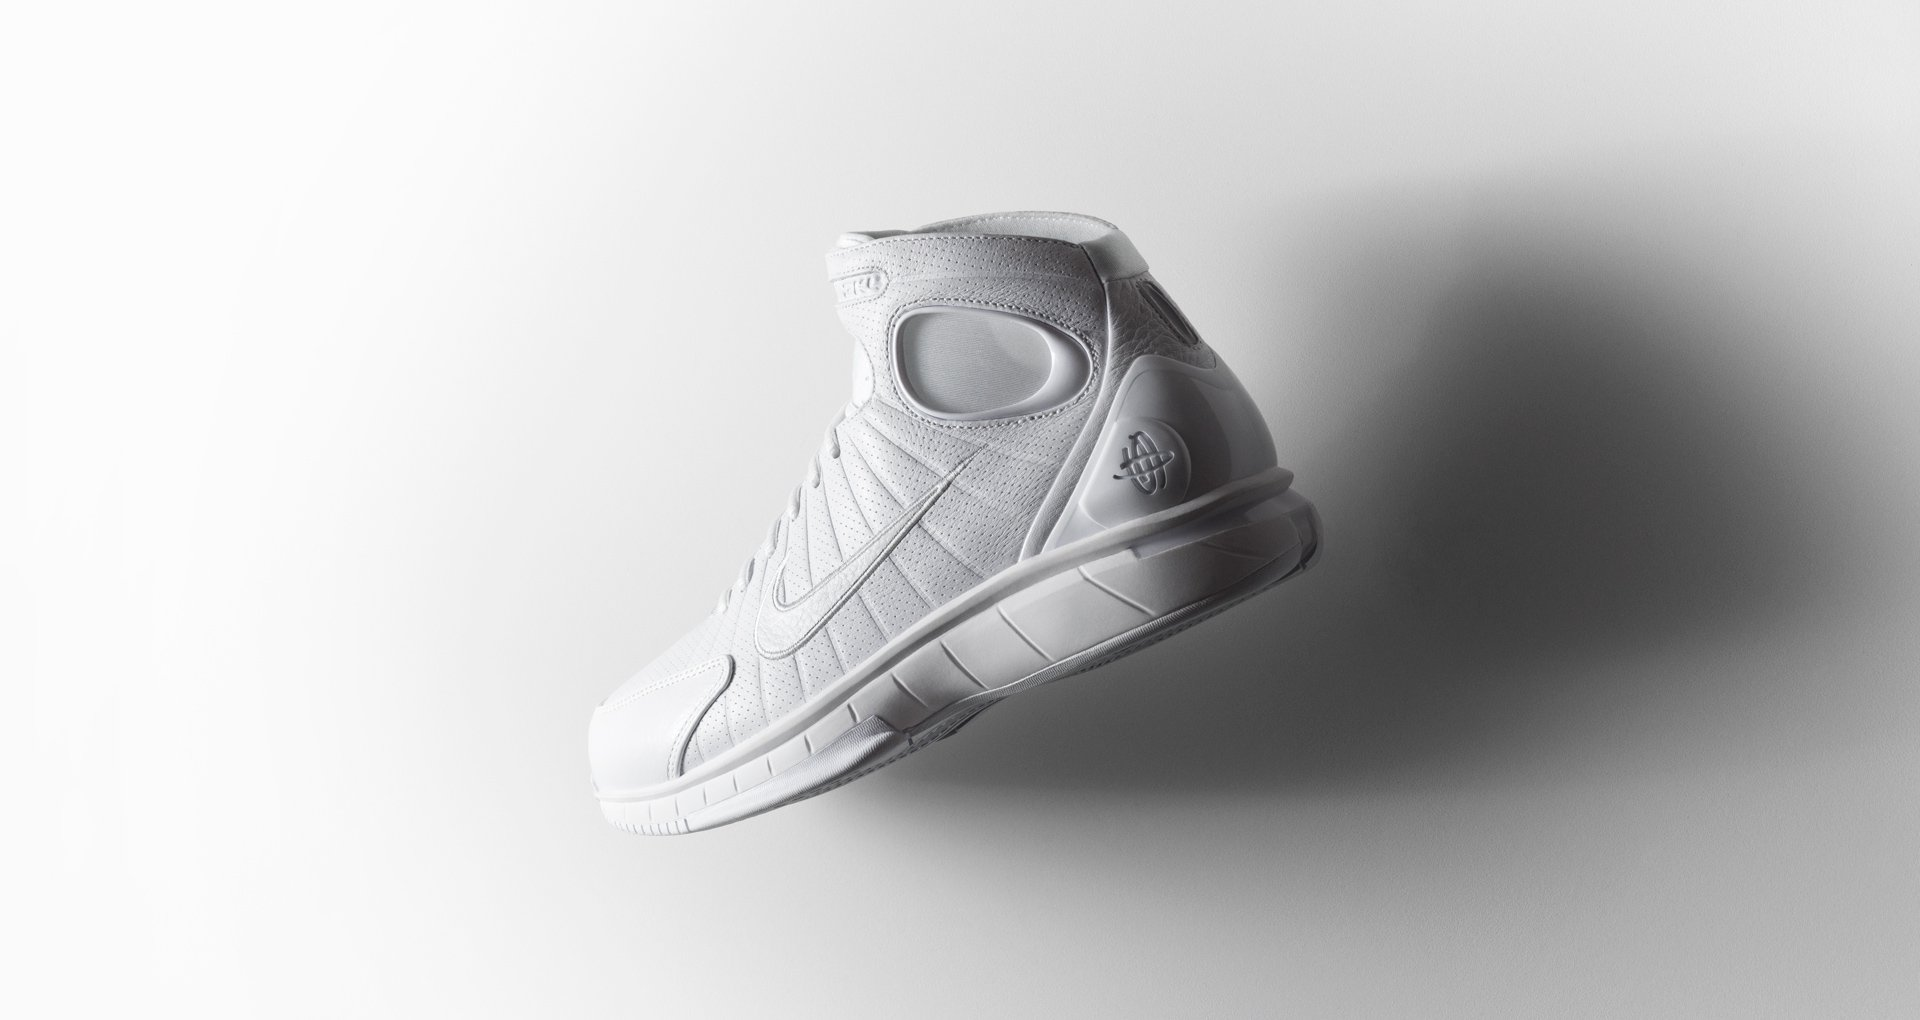 Nike Huarache 2k4 'Black Mamba' Face to Black Kobe Bryant lateral